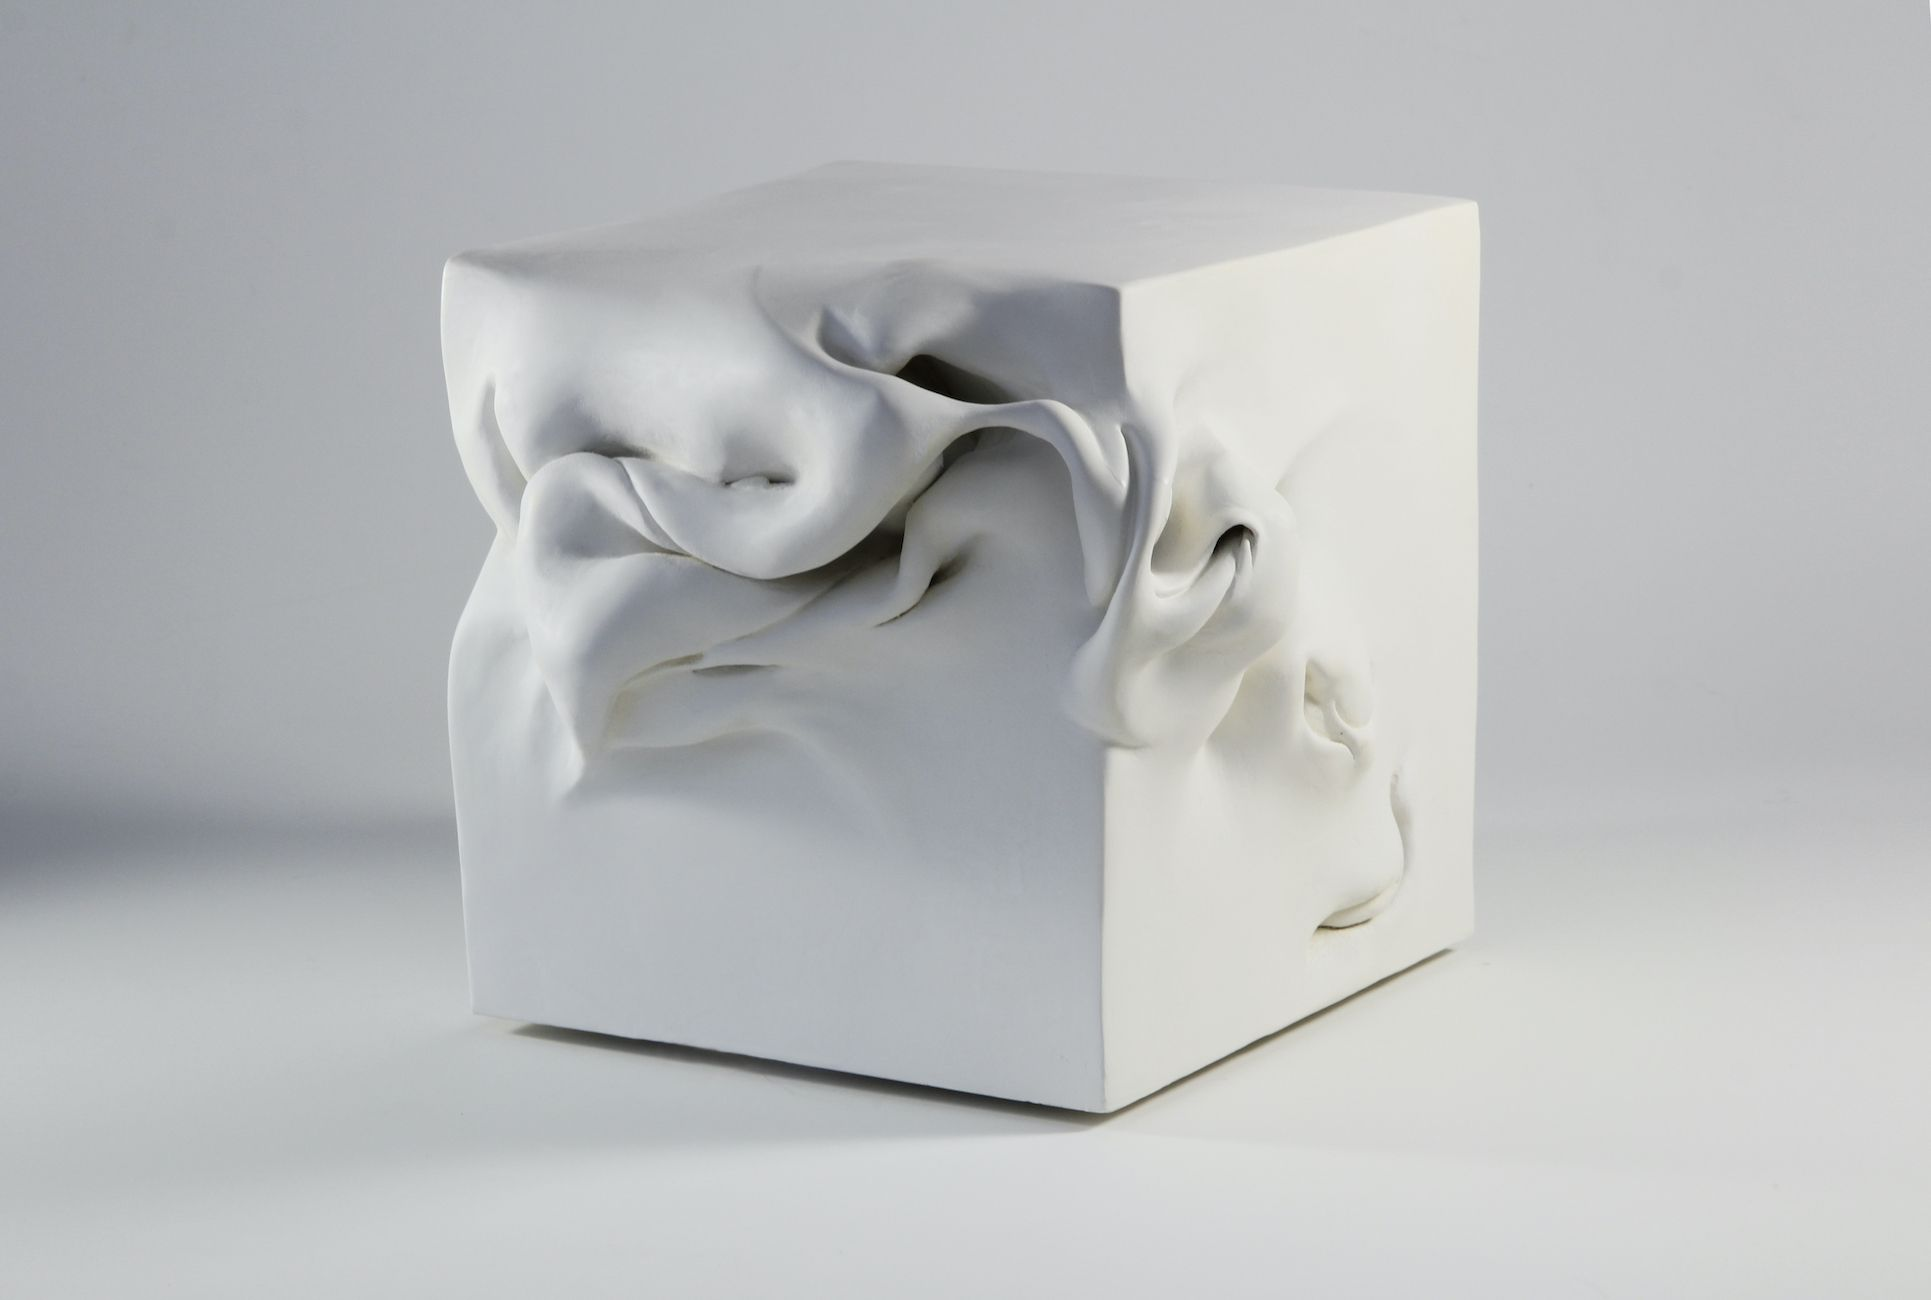 Cube 3,Sharon Brill,Sculpture